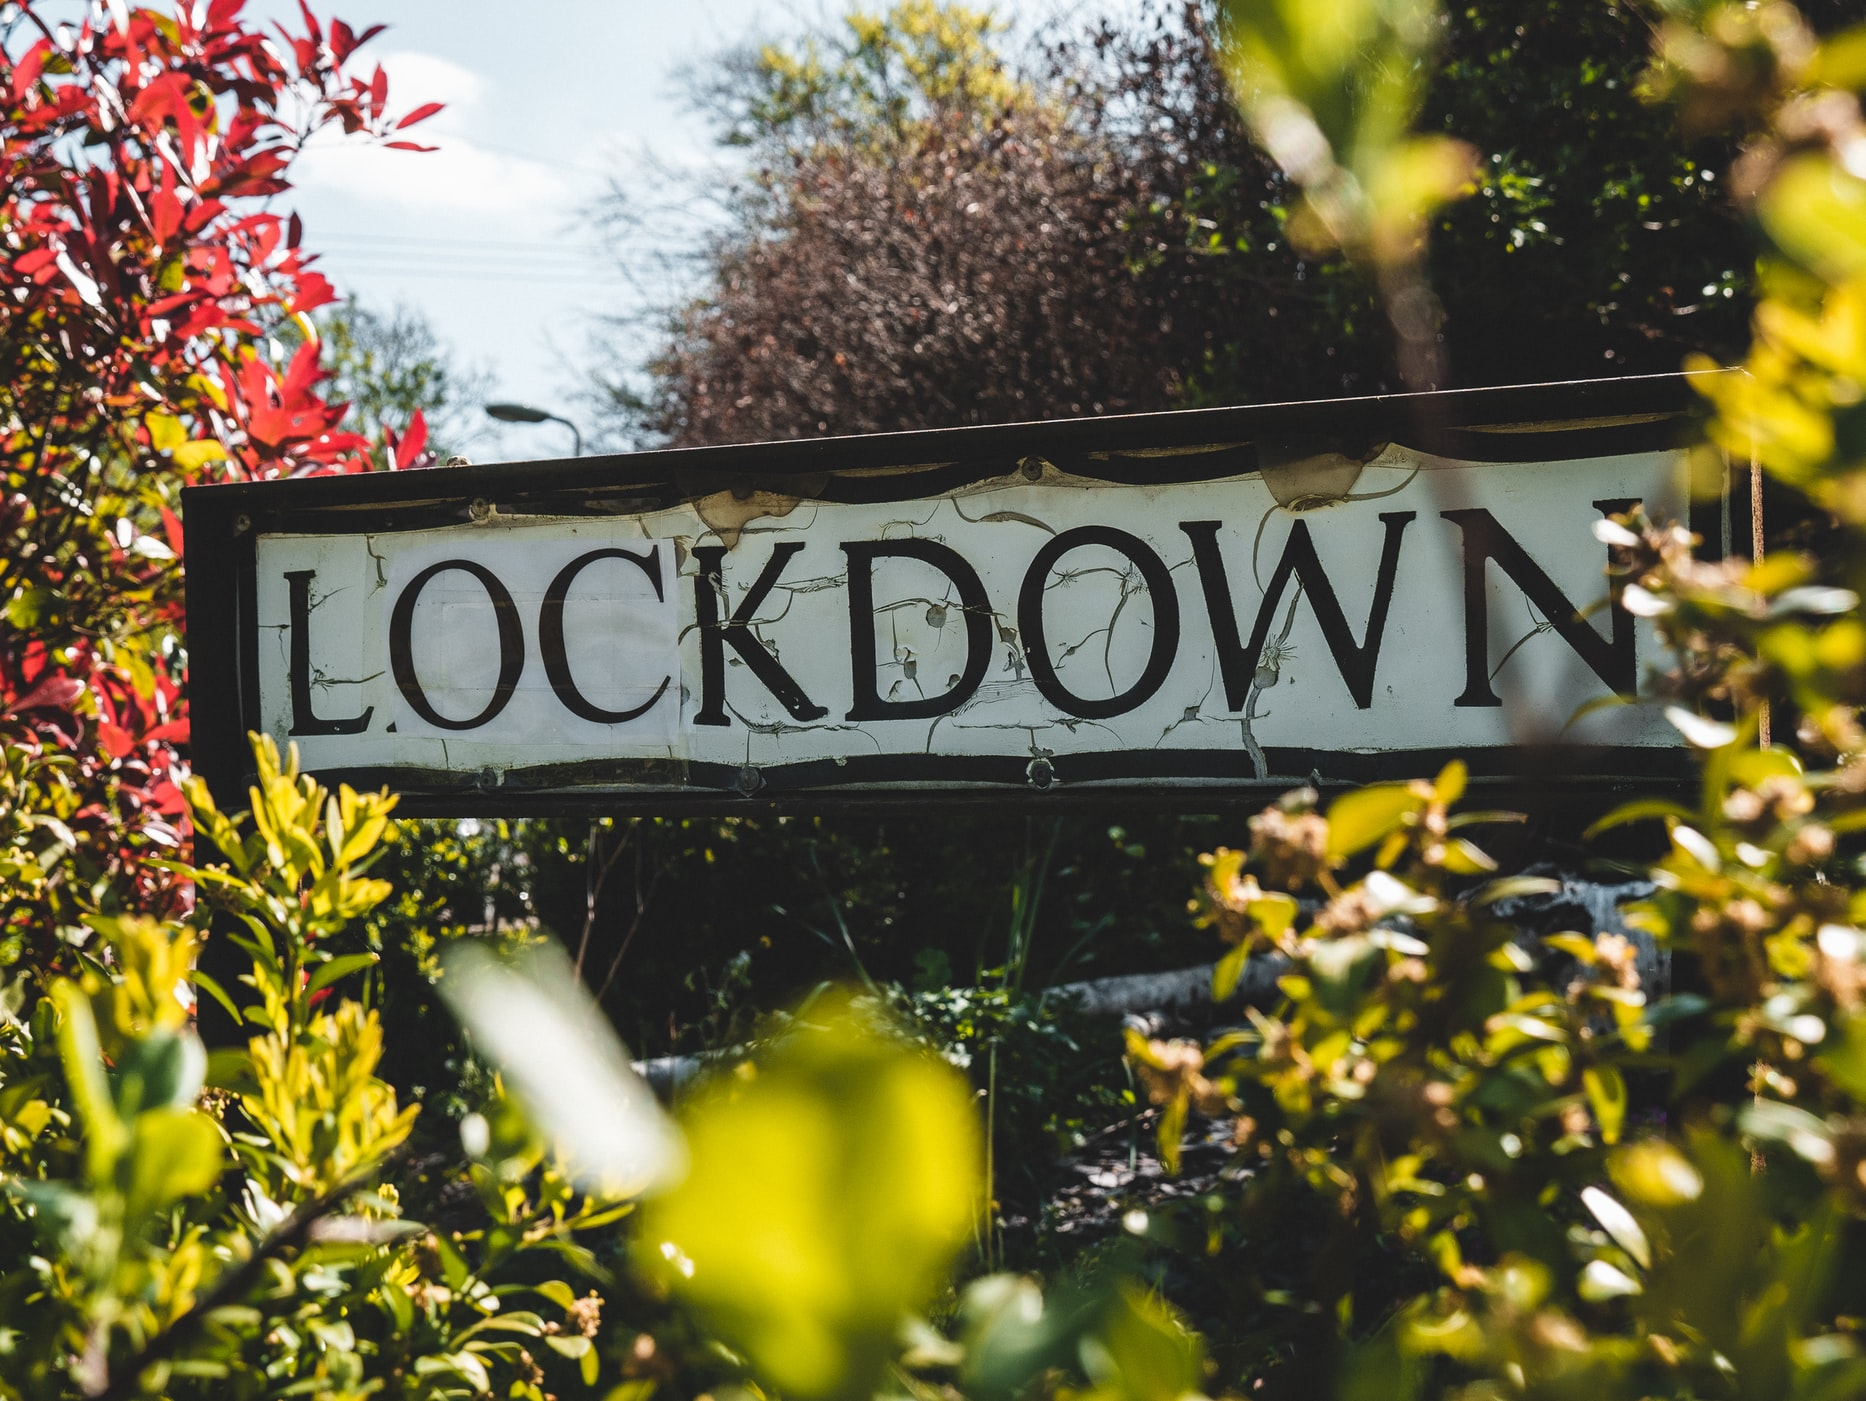 Emerging from lockdown: what are the prospects for Wetherspoons, Dunelm, JD Sports, Hollywood Bowl and others?